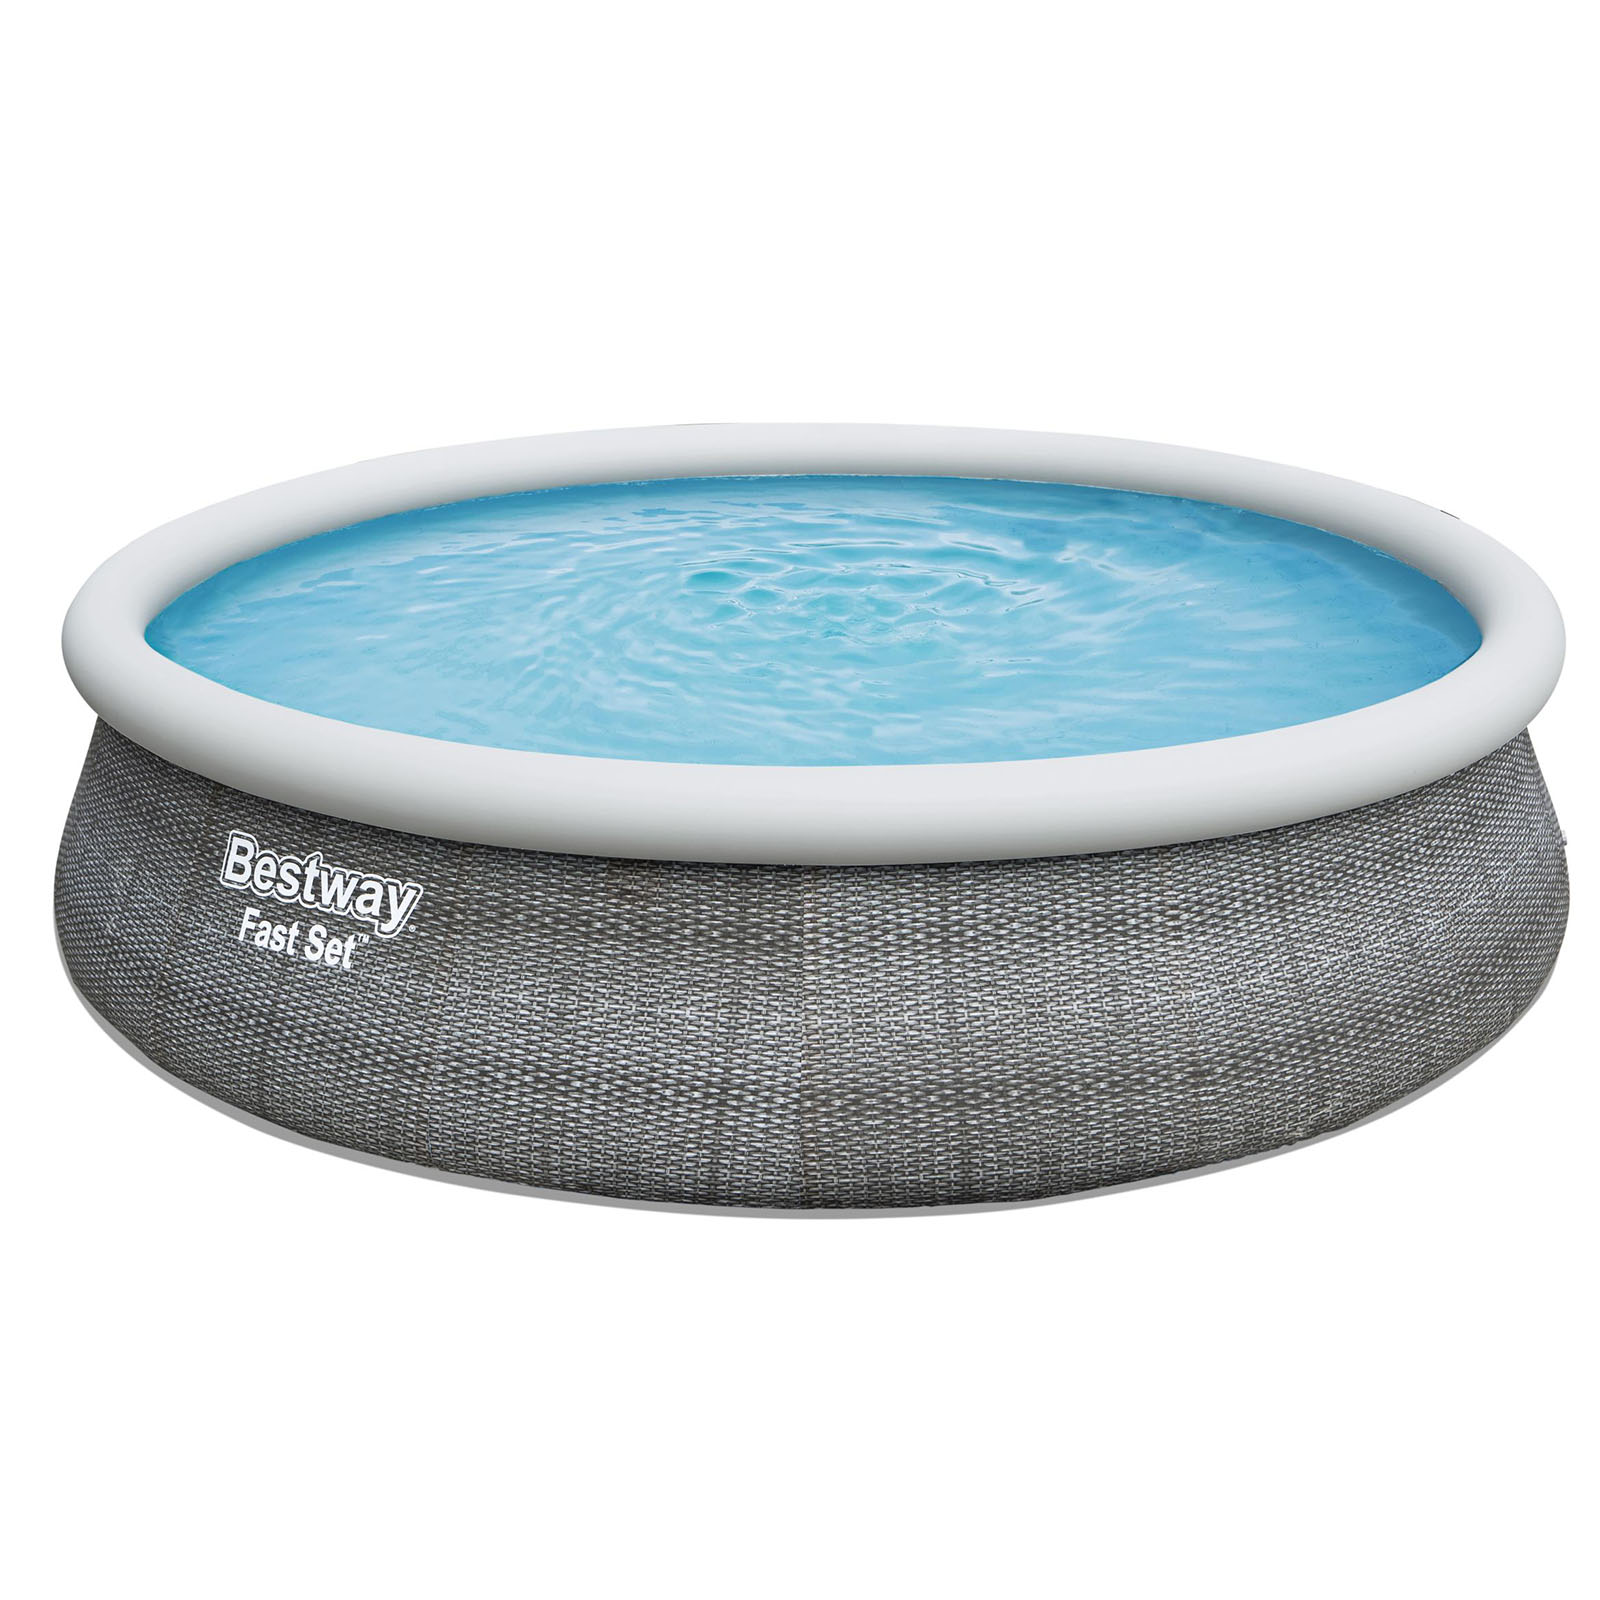 Bestway Above Ground Pool Swimming Pool Fast Set Splash Splish Pools 4.57m